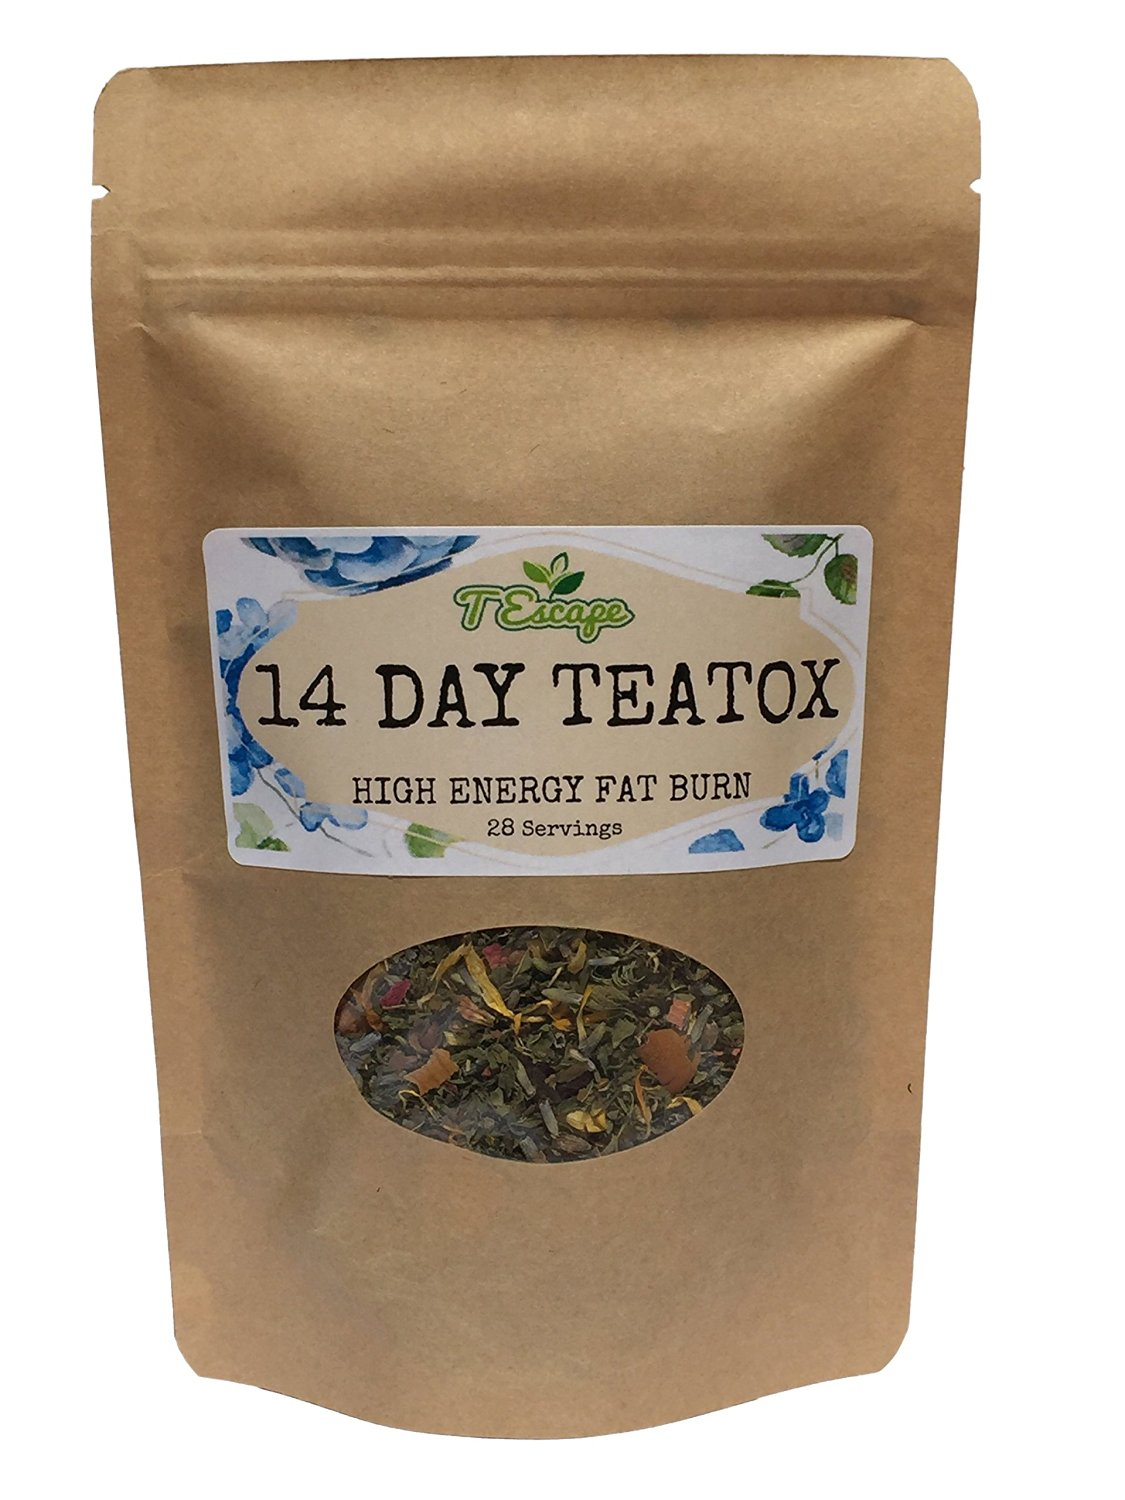 Flat Tummy 14 DAY DETOX TEA - SkinnyMint - Natural Skinny TEATOX - NO LAXATIVES - Reduce Cravings & Bloating with Guarana, Acai & Ginseng. 100%